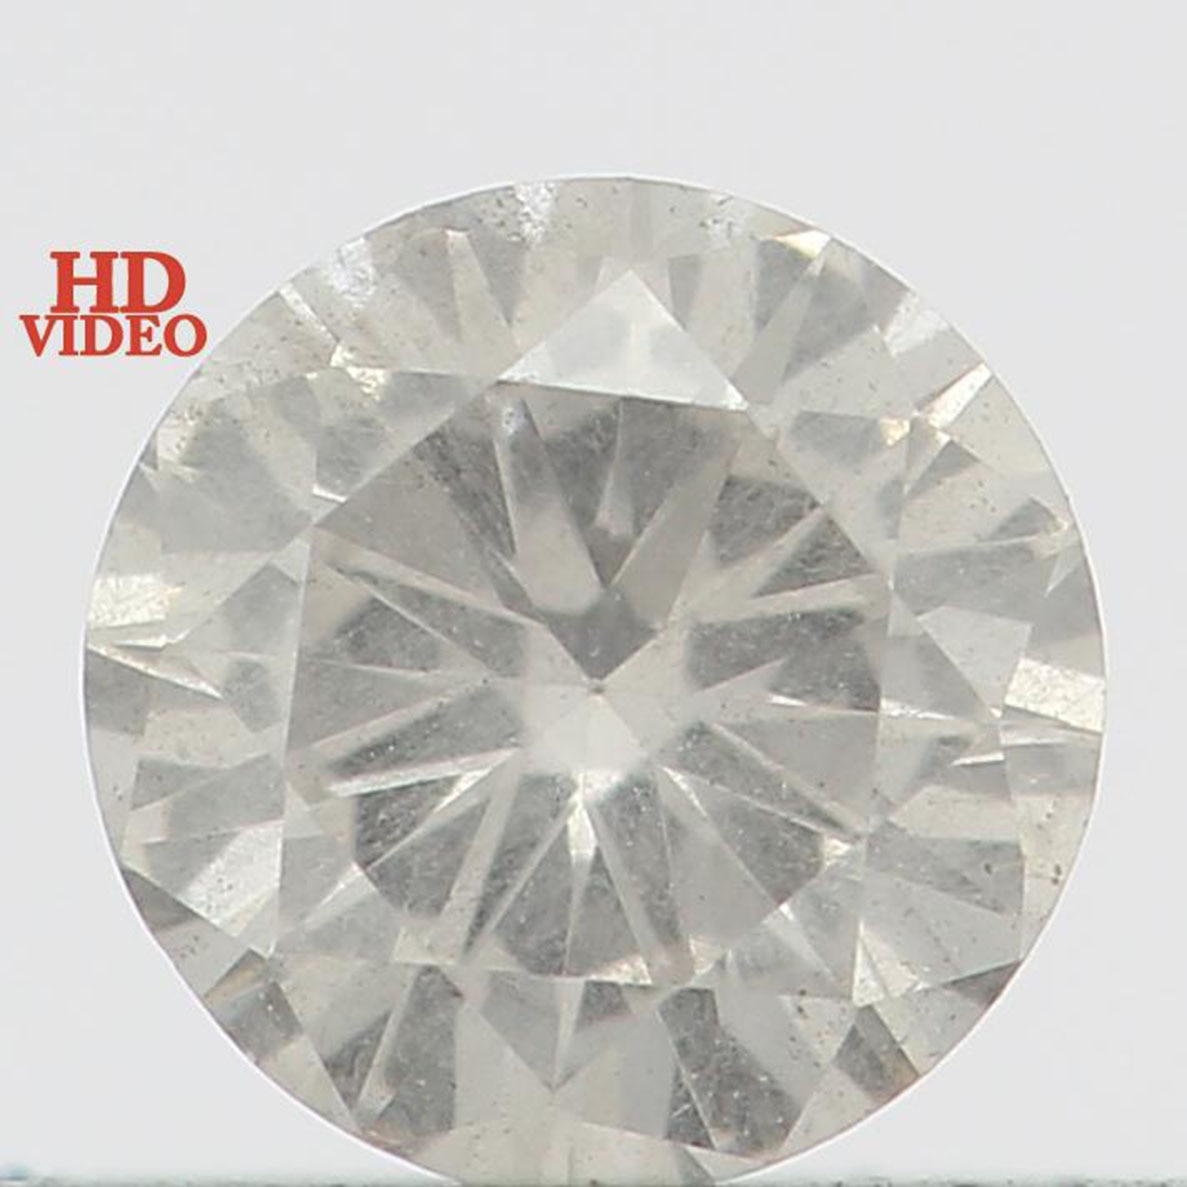 cut diamond good than phd buying variation and carat diamonds other of found between with beginner we price s image a the c that guide online equal double ideal can an more all